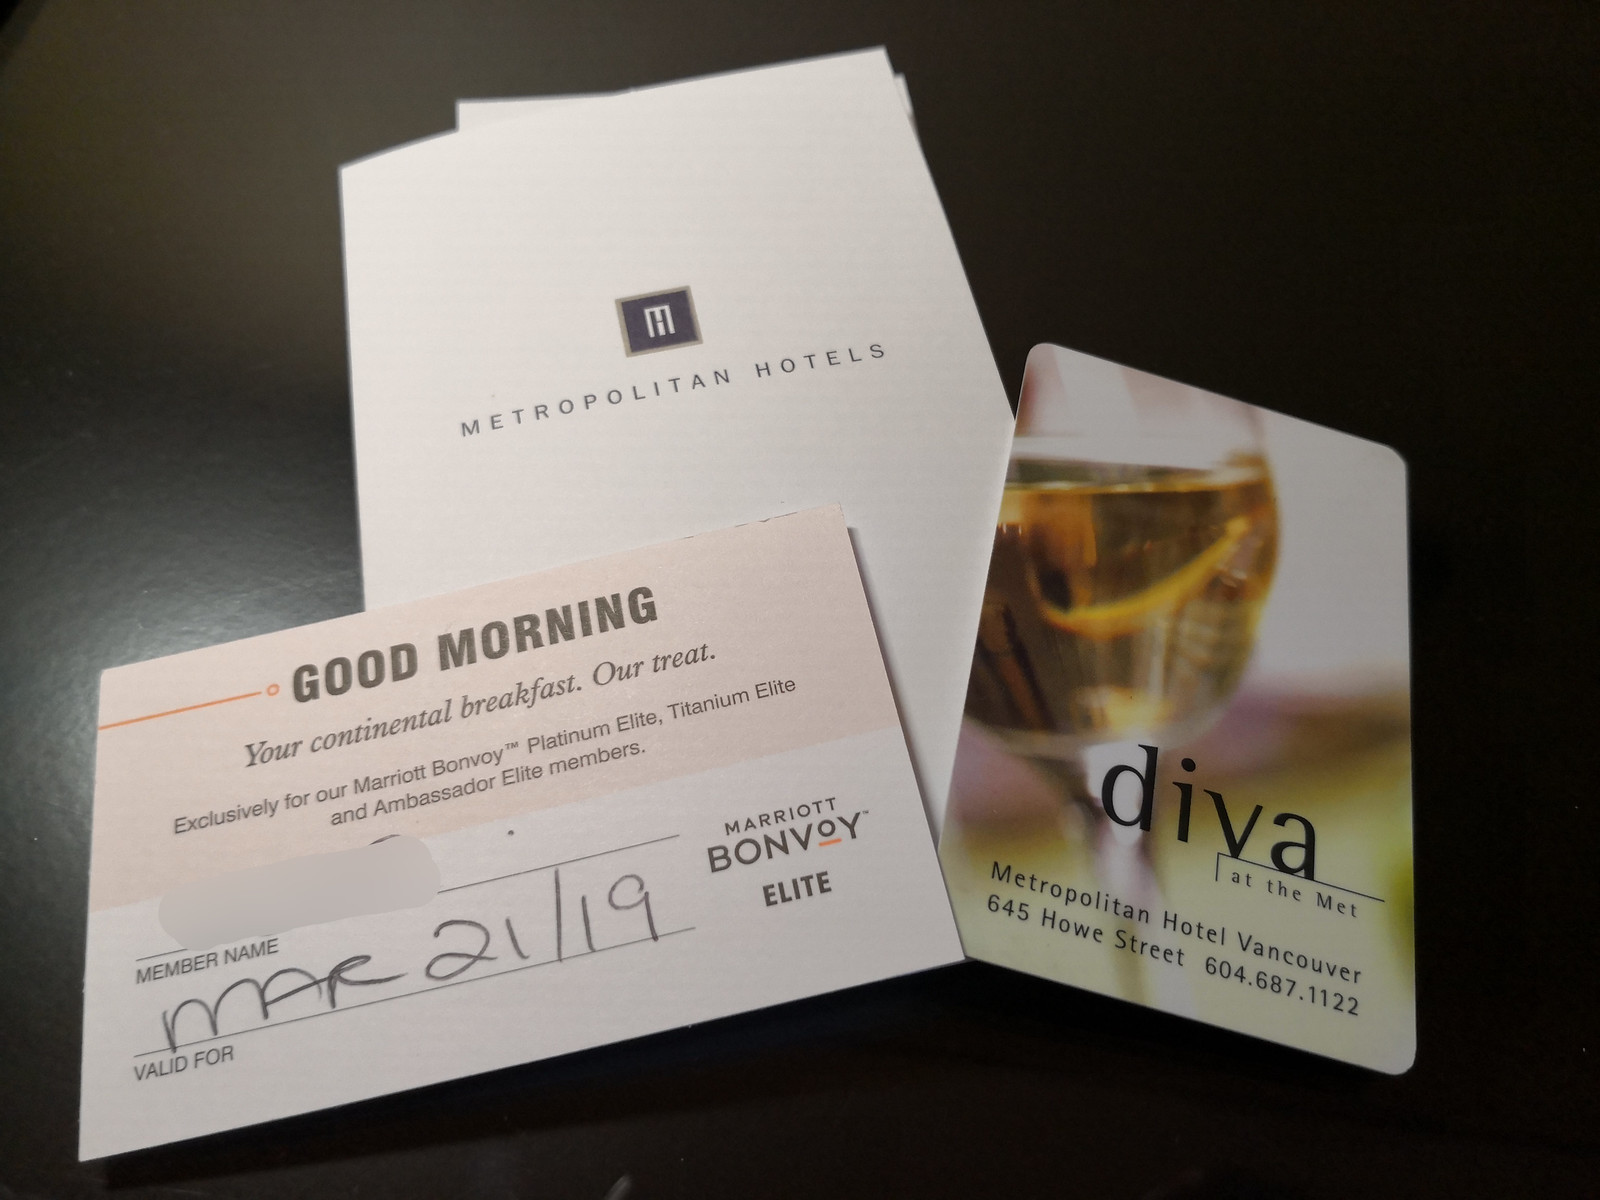 Breakfast voucher and room keys